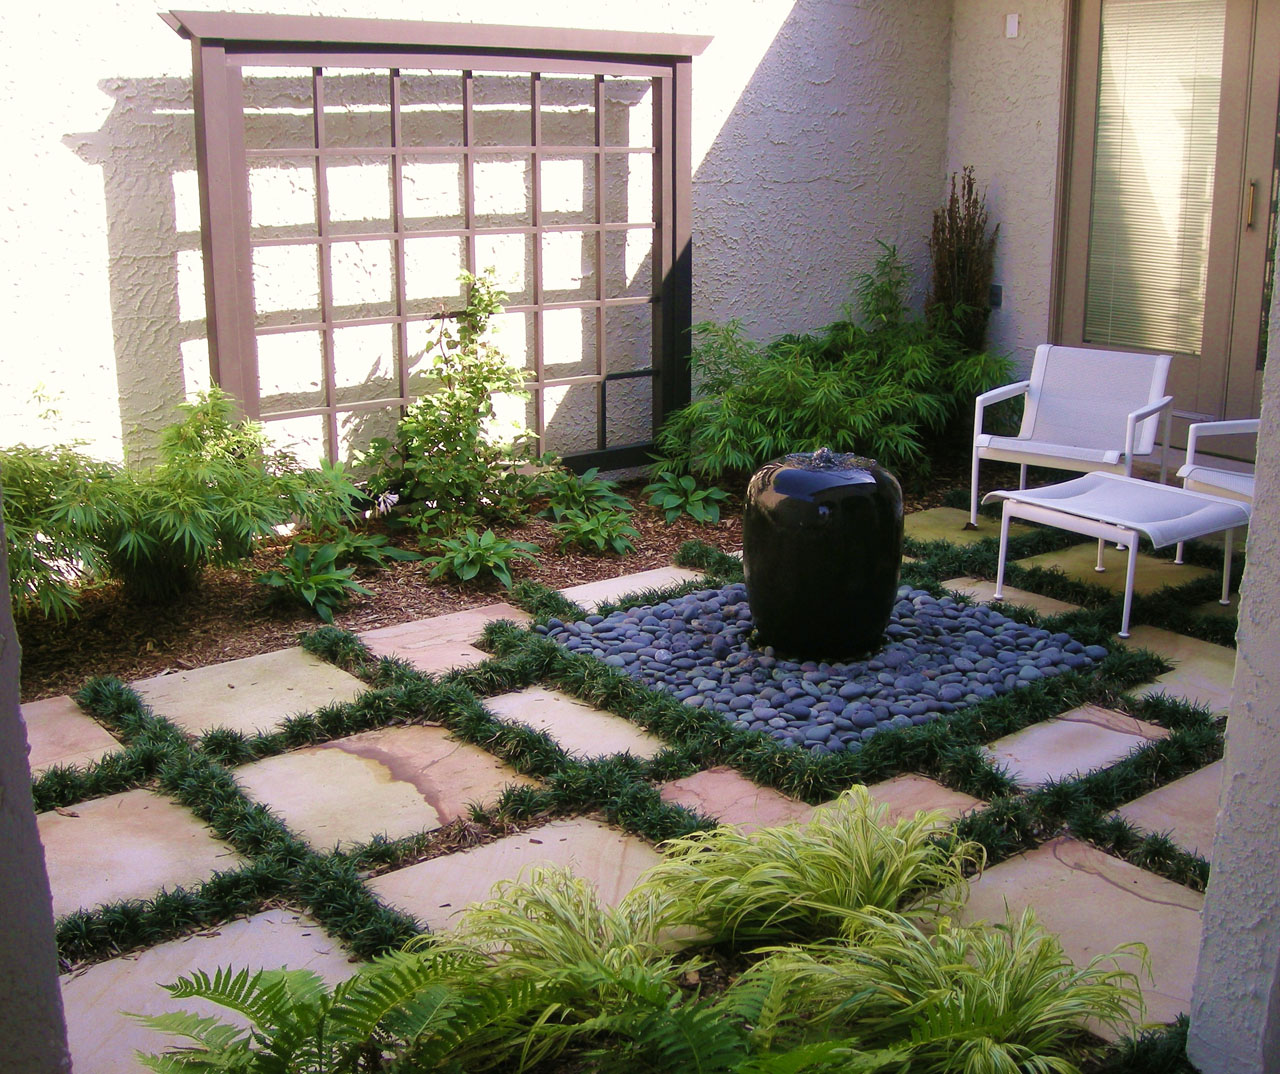 Charmant Water Features Add Tranquility With A Fountain, Pond, Or Waterfall